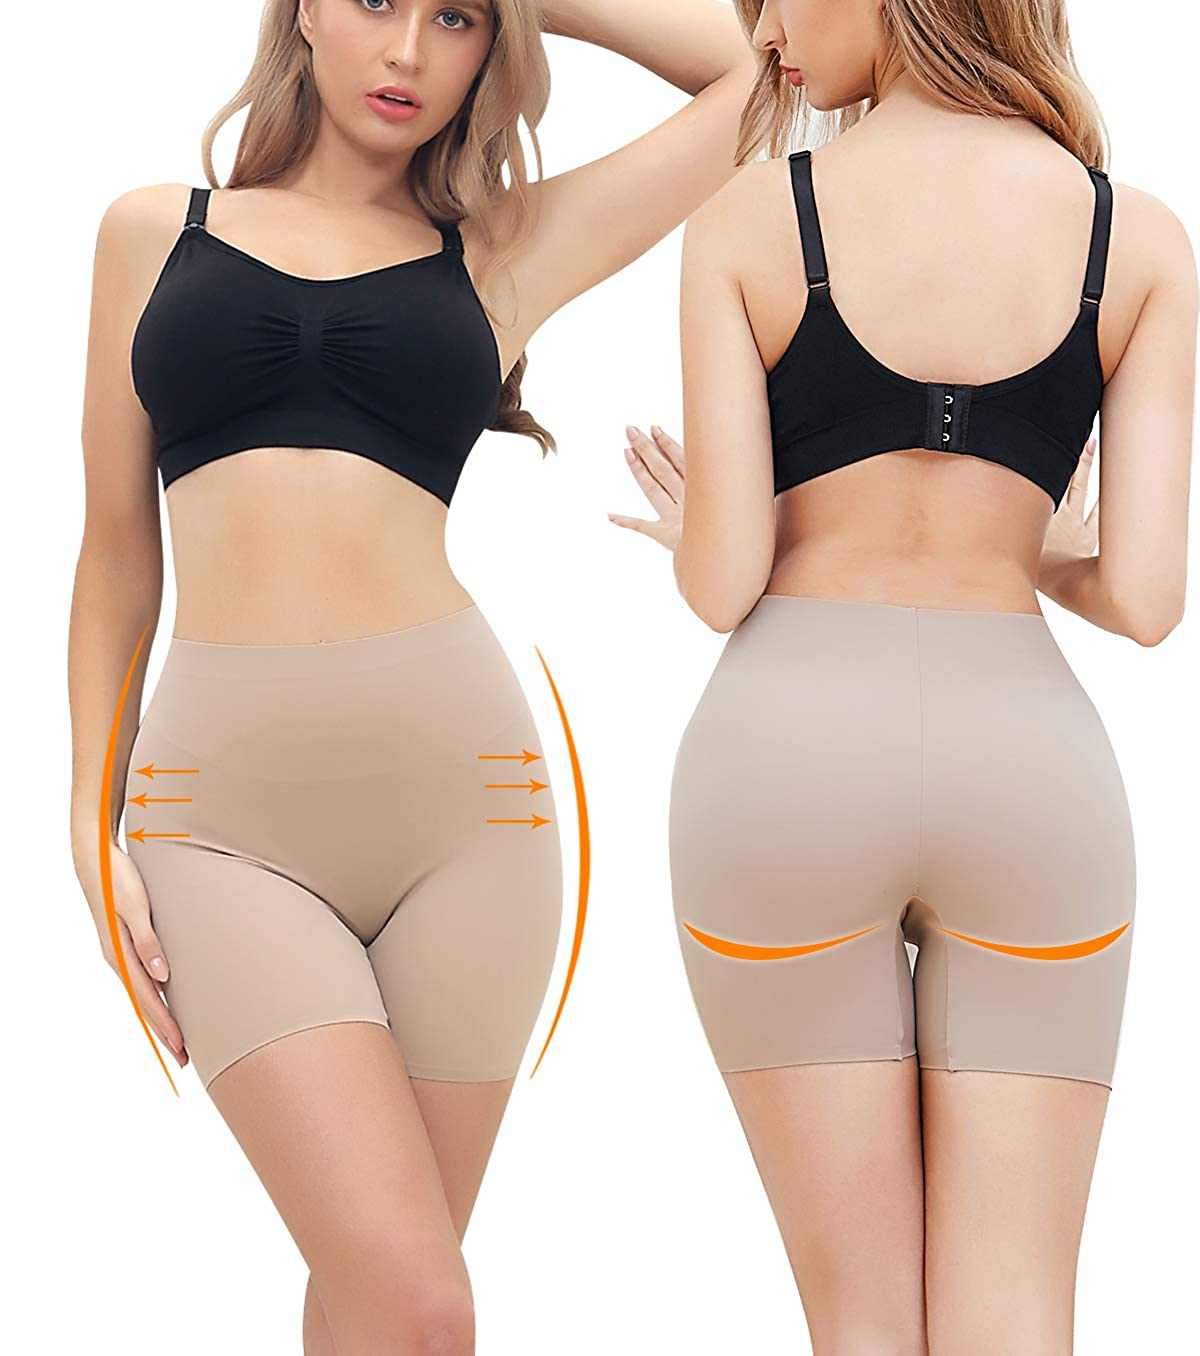 SLIMBELLE Anti Chafing Shorts Seamless Under Dress Shorts Invisible Safety Pants Stretch Underwear Smooth Slip Yoga Boxer Shorts Panty for Women